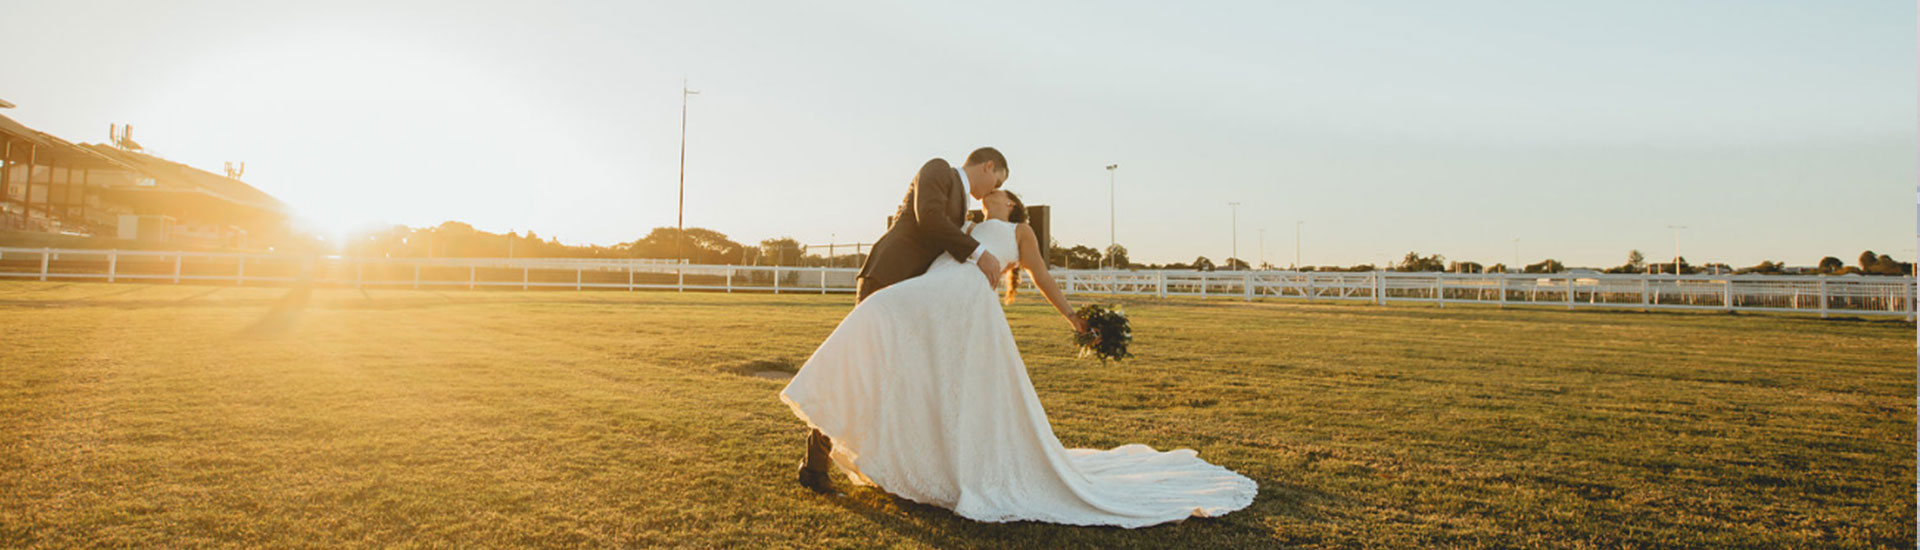 Unique and magical wedding venues at Eagle Farm Racecourse, Brisbane Racing Club